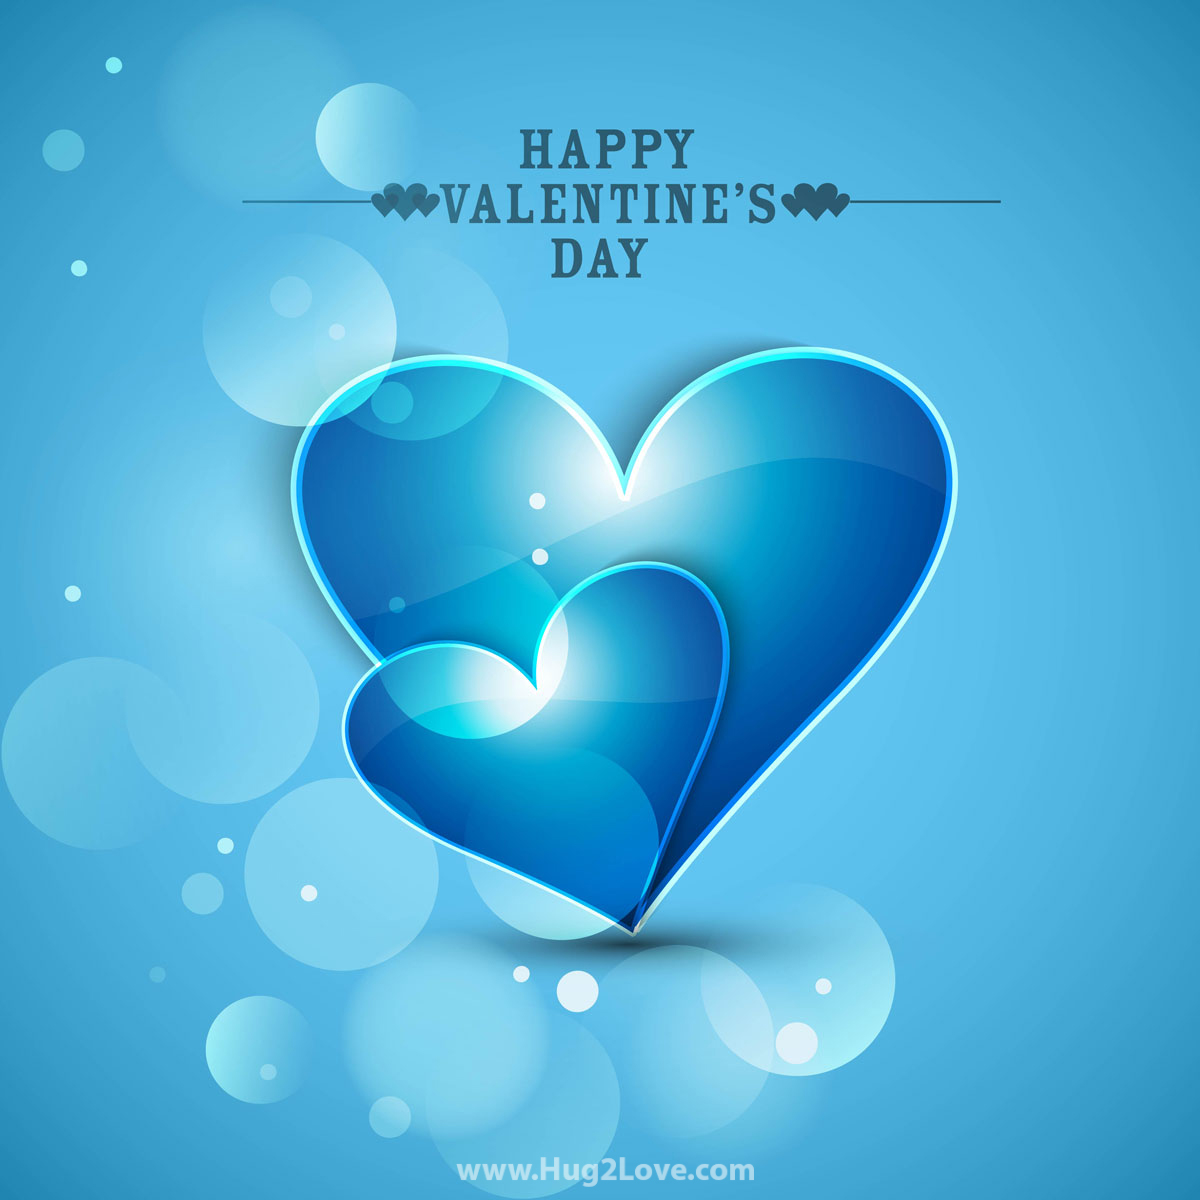 happy valentines day hd wallpaper 2016